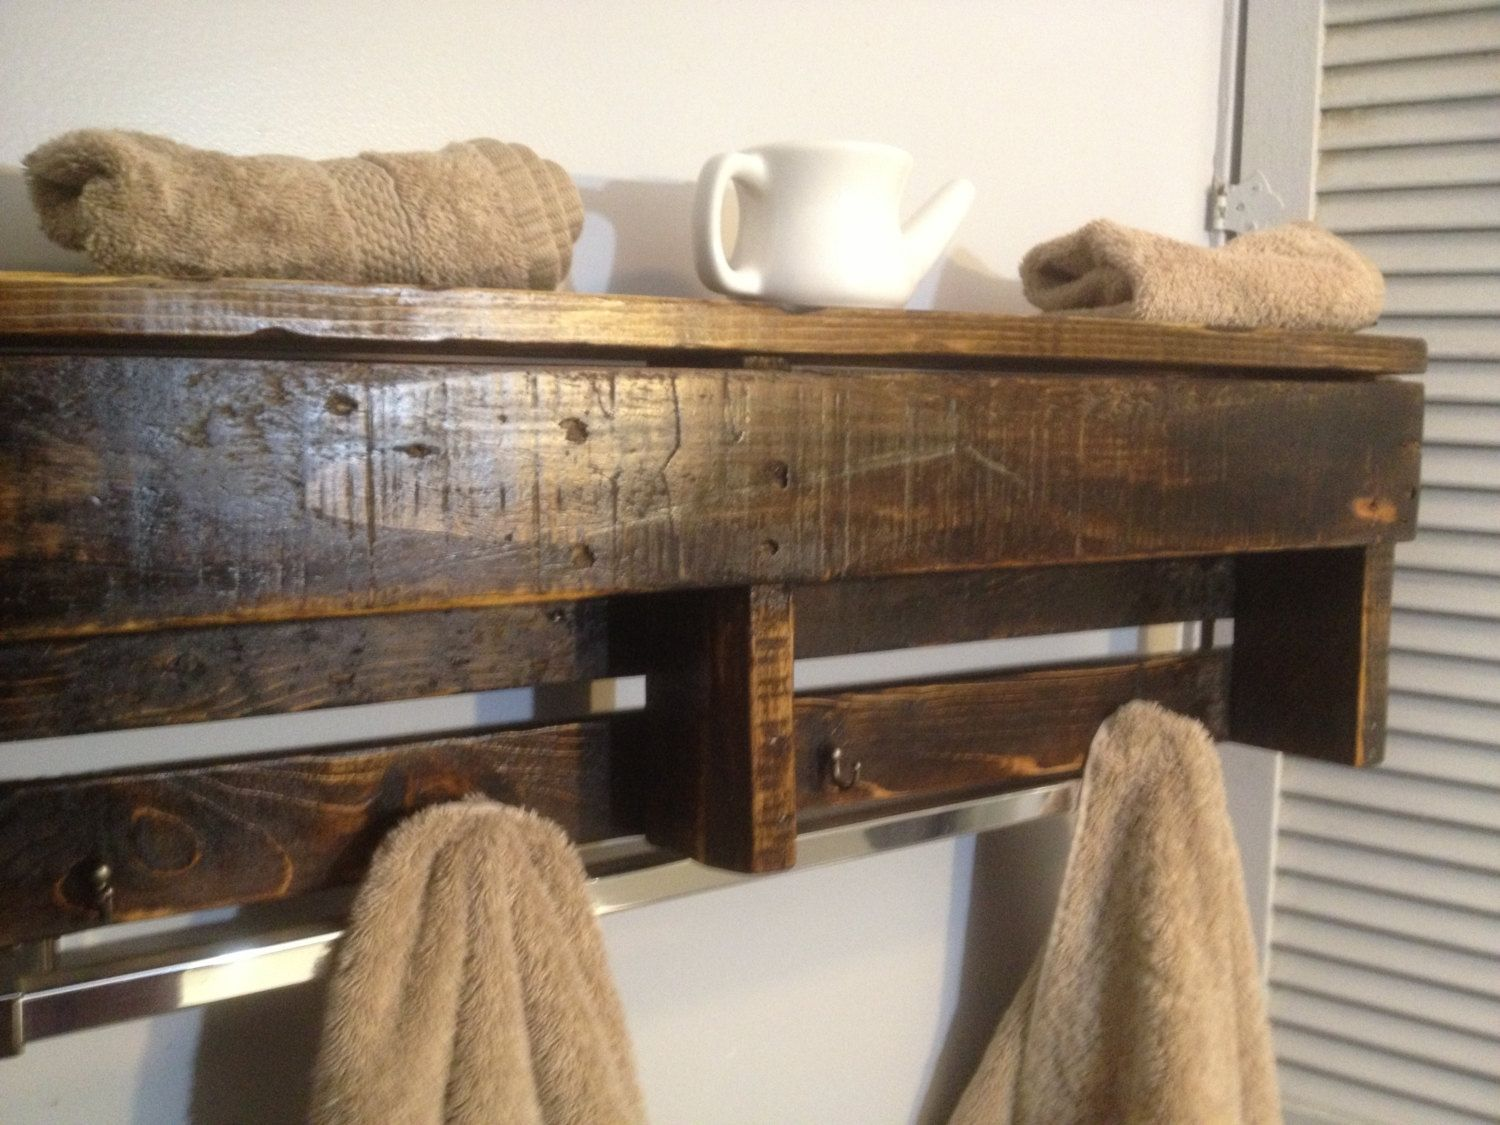 Custom handmade reclaimed pallet wood shelf entry organizer coat rack bathroom shelf Homemade wooden furniture